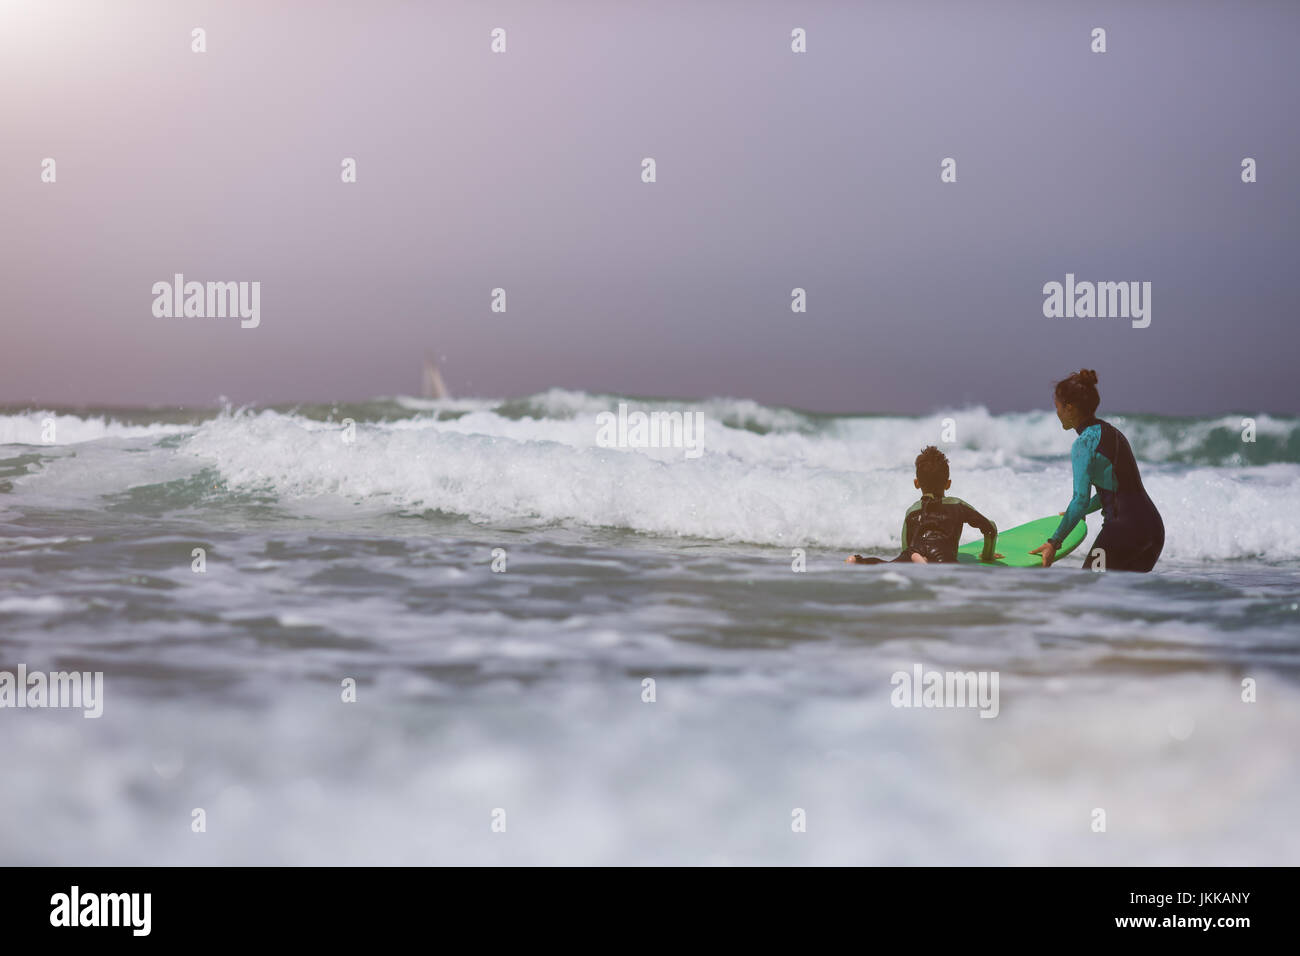 Athletic girl with little boy teaching him surfing - Stock Image